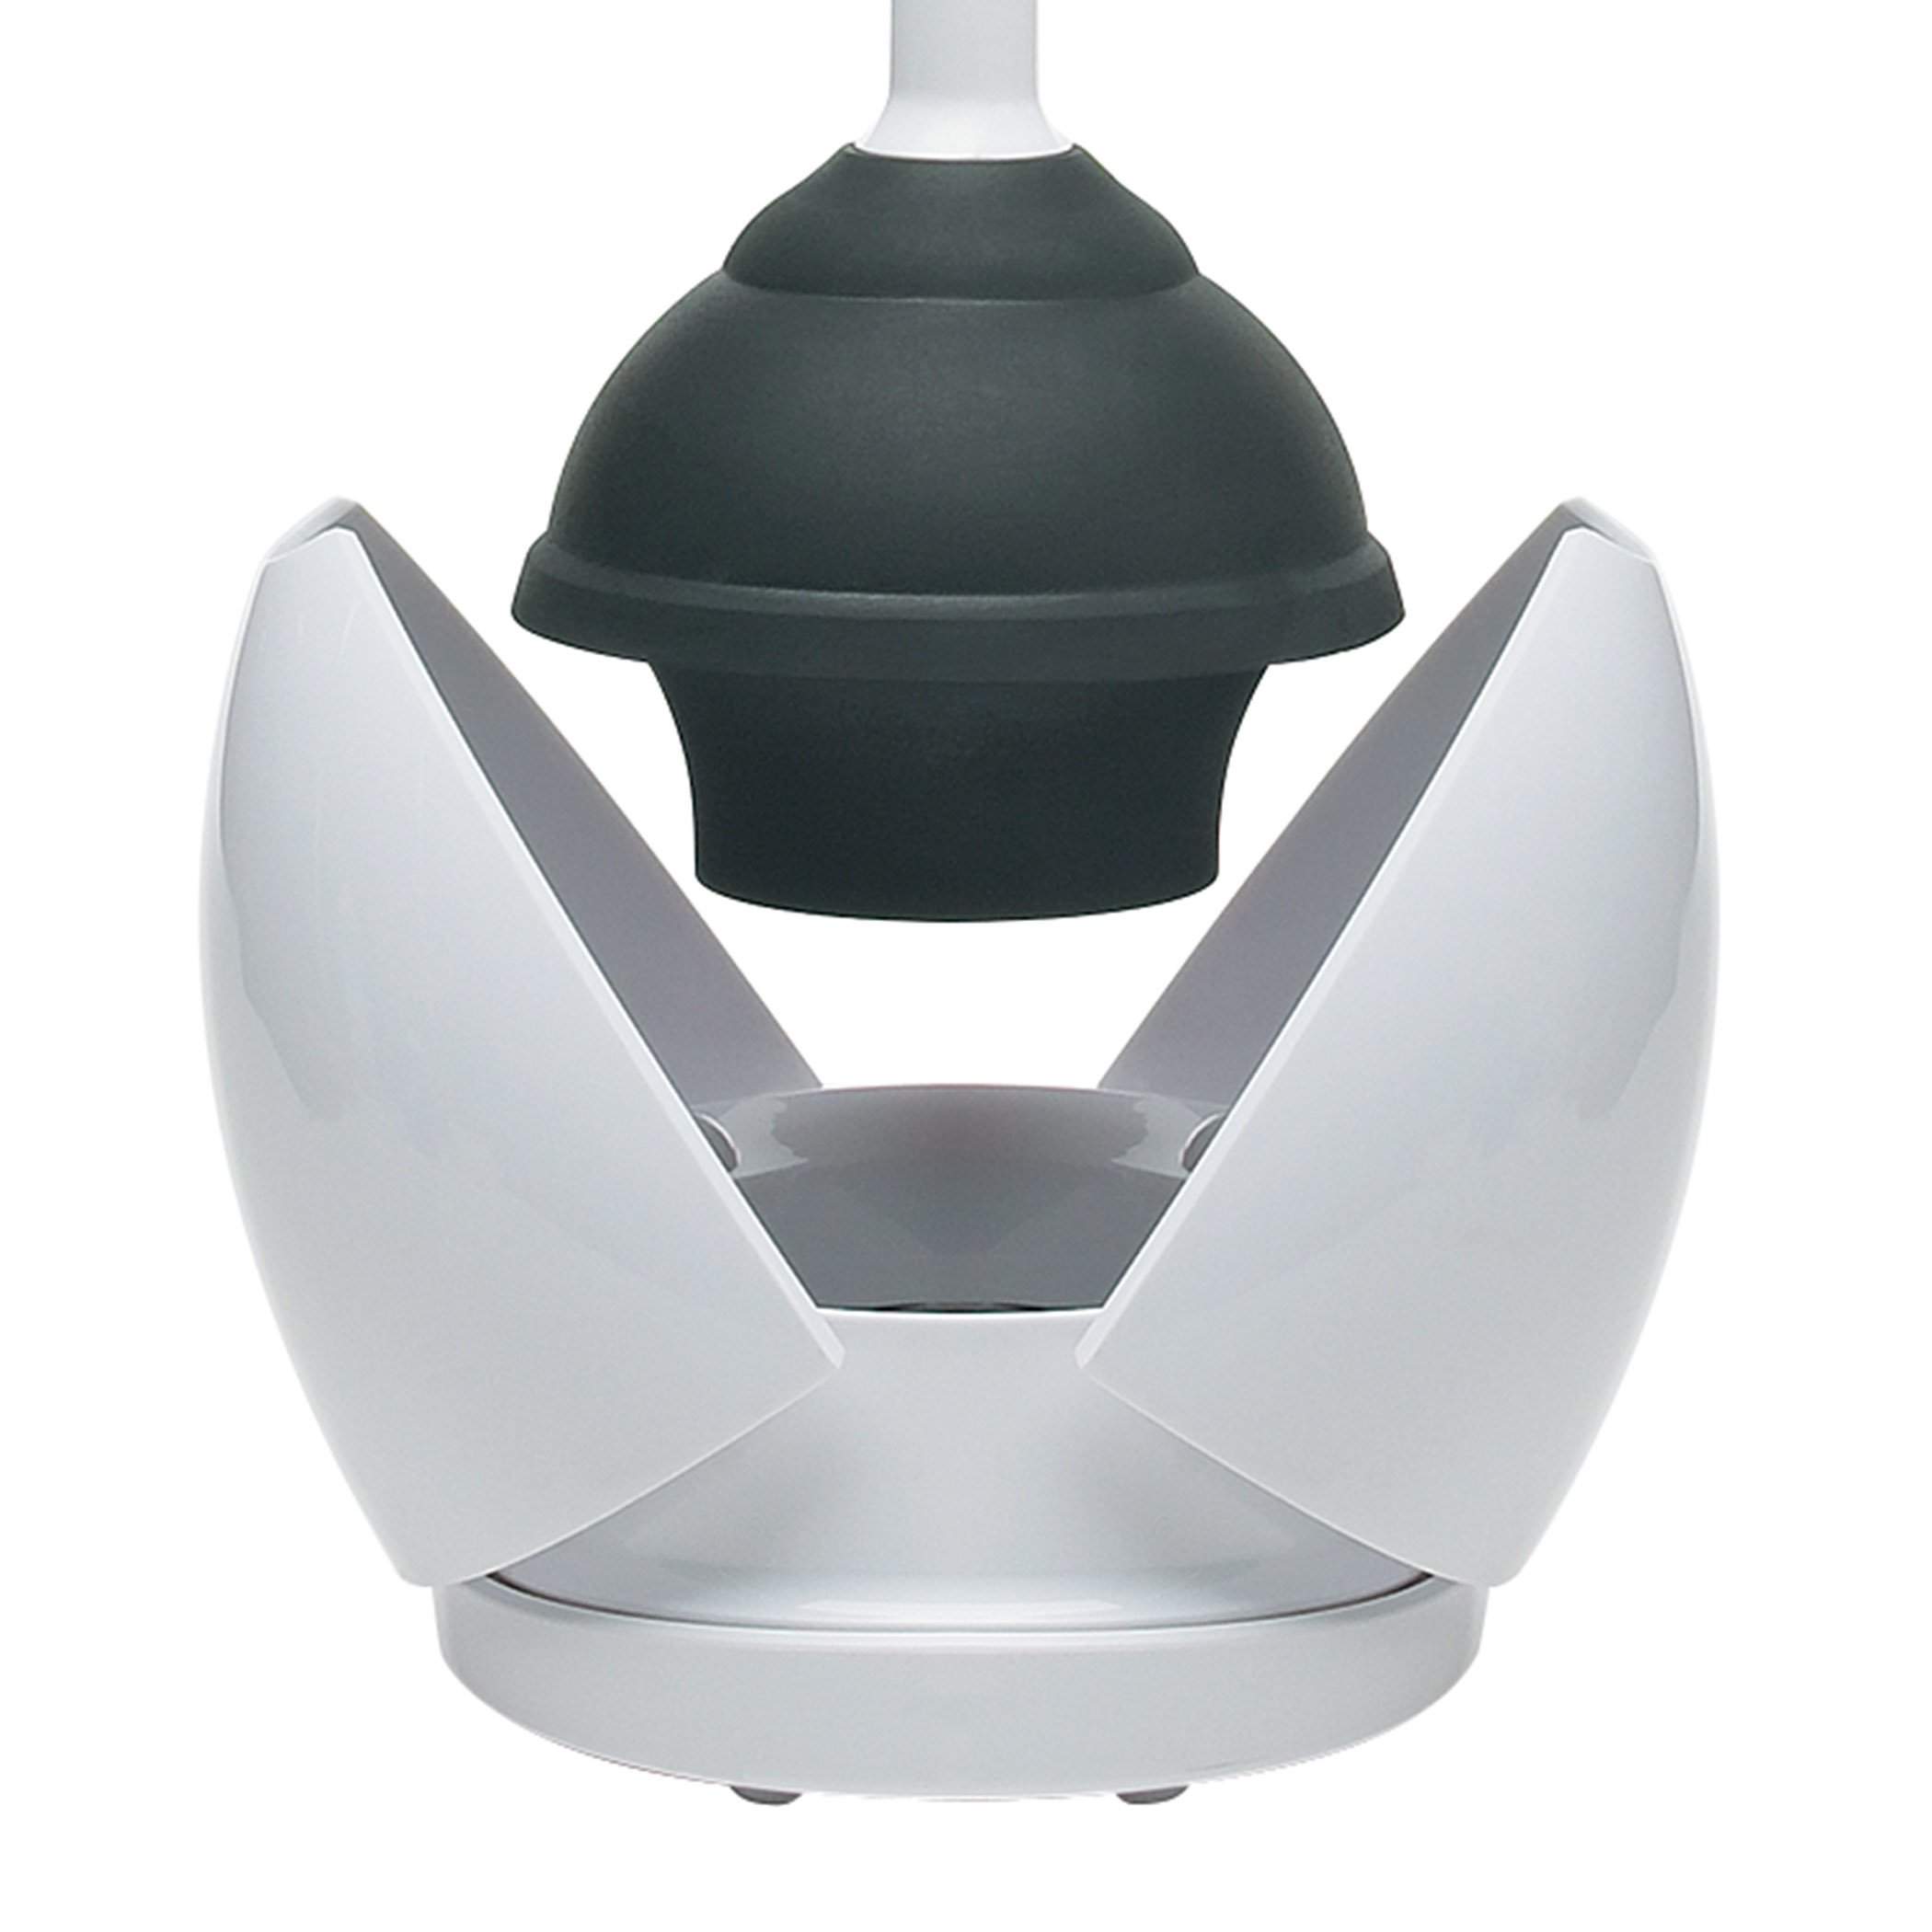 OXO Good Grips Hideaway Toilet Plunger and Canister by OXO (Image #3)